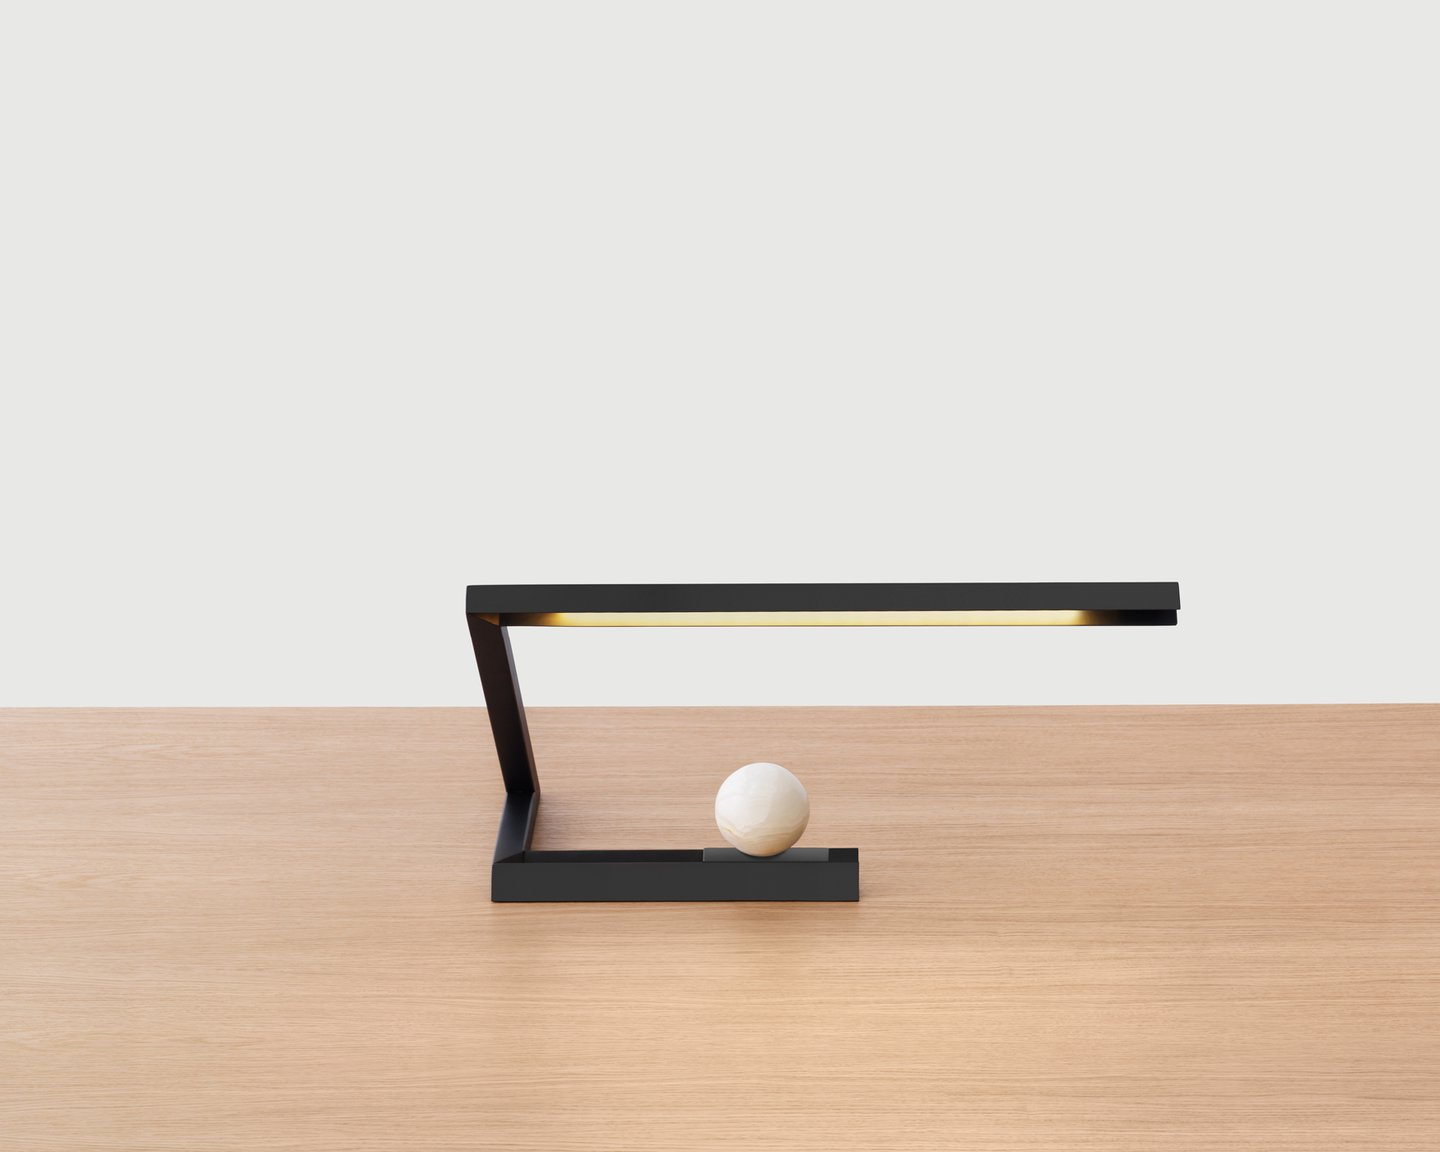 Image: uploads/2017_03/Resident-Oud-table-Light-Black-by-Nat-Cheshire-1.jpg